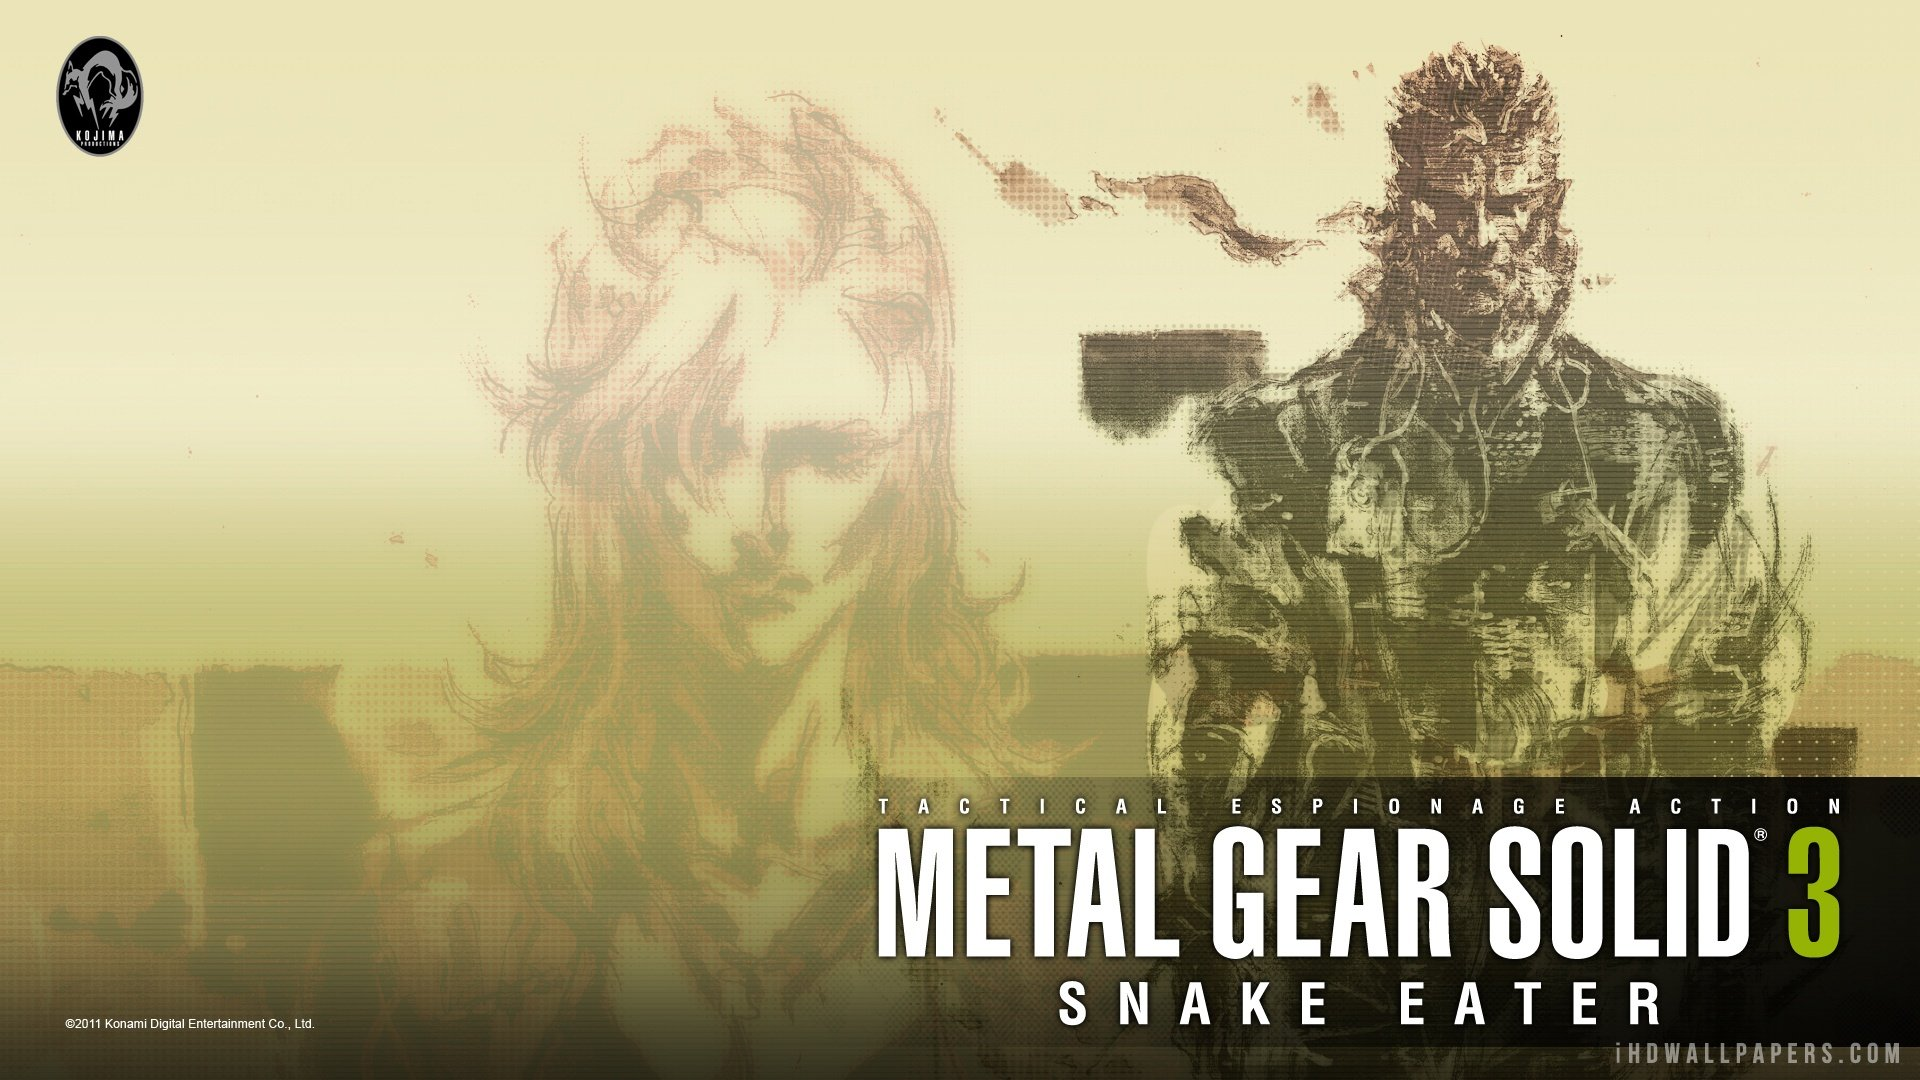 46 Metal Gear Solid 3 Wallpaper On Wallpapersafari